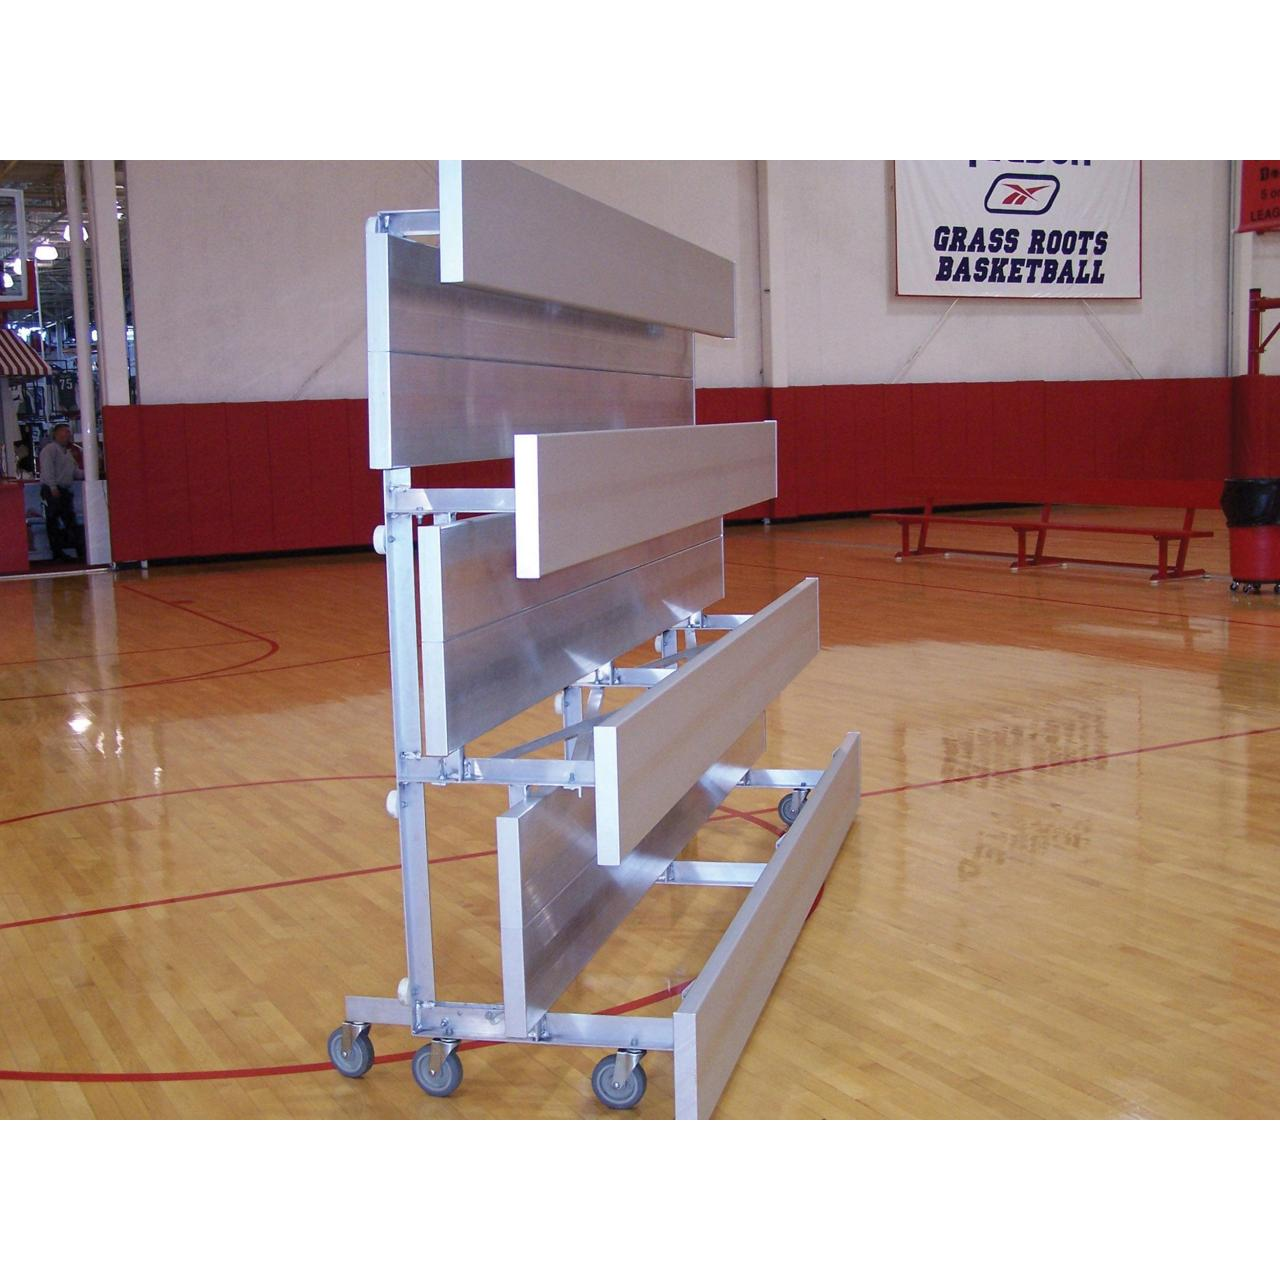 Buy cheap Baseball-Softball Tip-N-Roll Bleachers 3 Row 7.5' Tip-N-Roll Bleacher from wholesalers